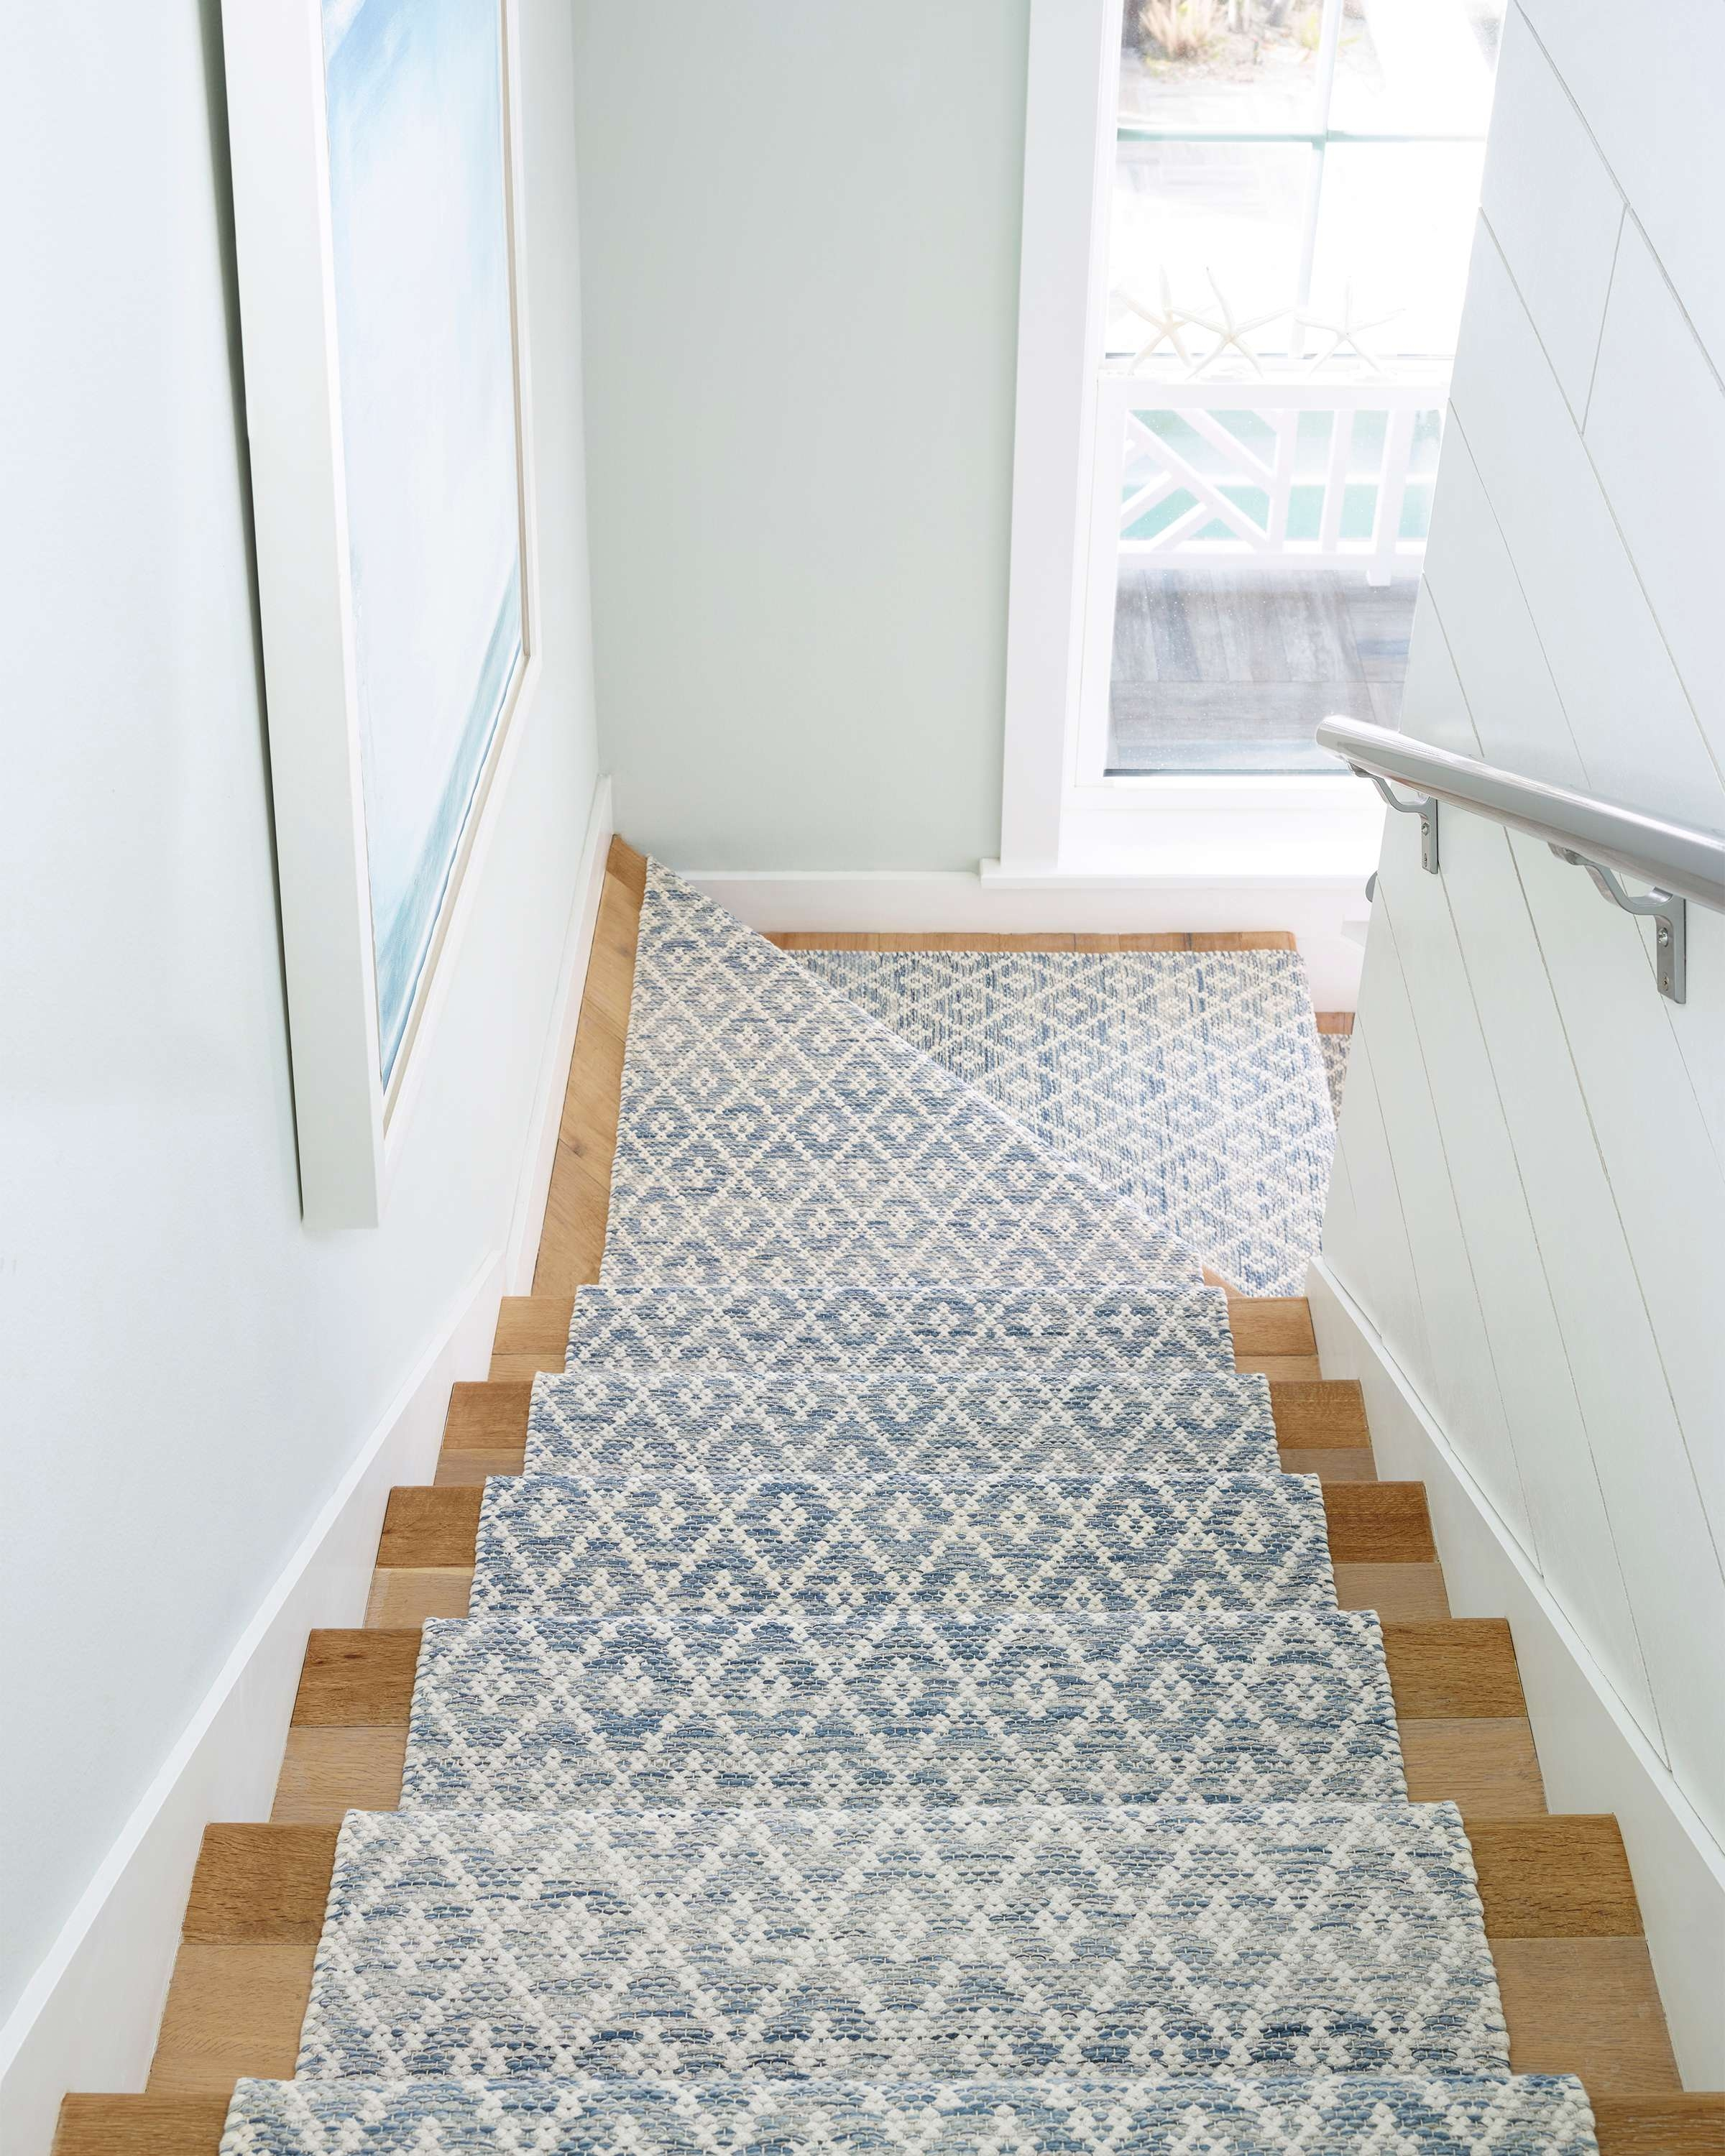 How To Choose A Stair Runner Rug Annie Selke   Durable Carpet For Stairs   Straight   Trendy   Different Style Stair   Hallway   Stair Residential